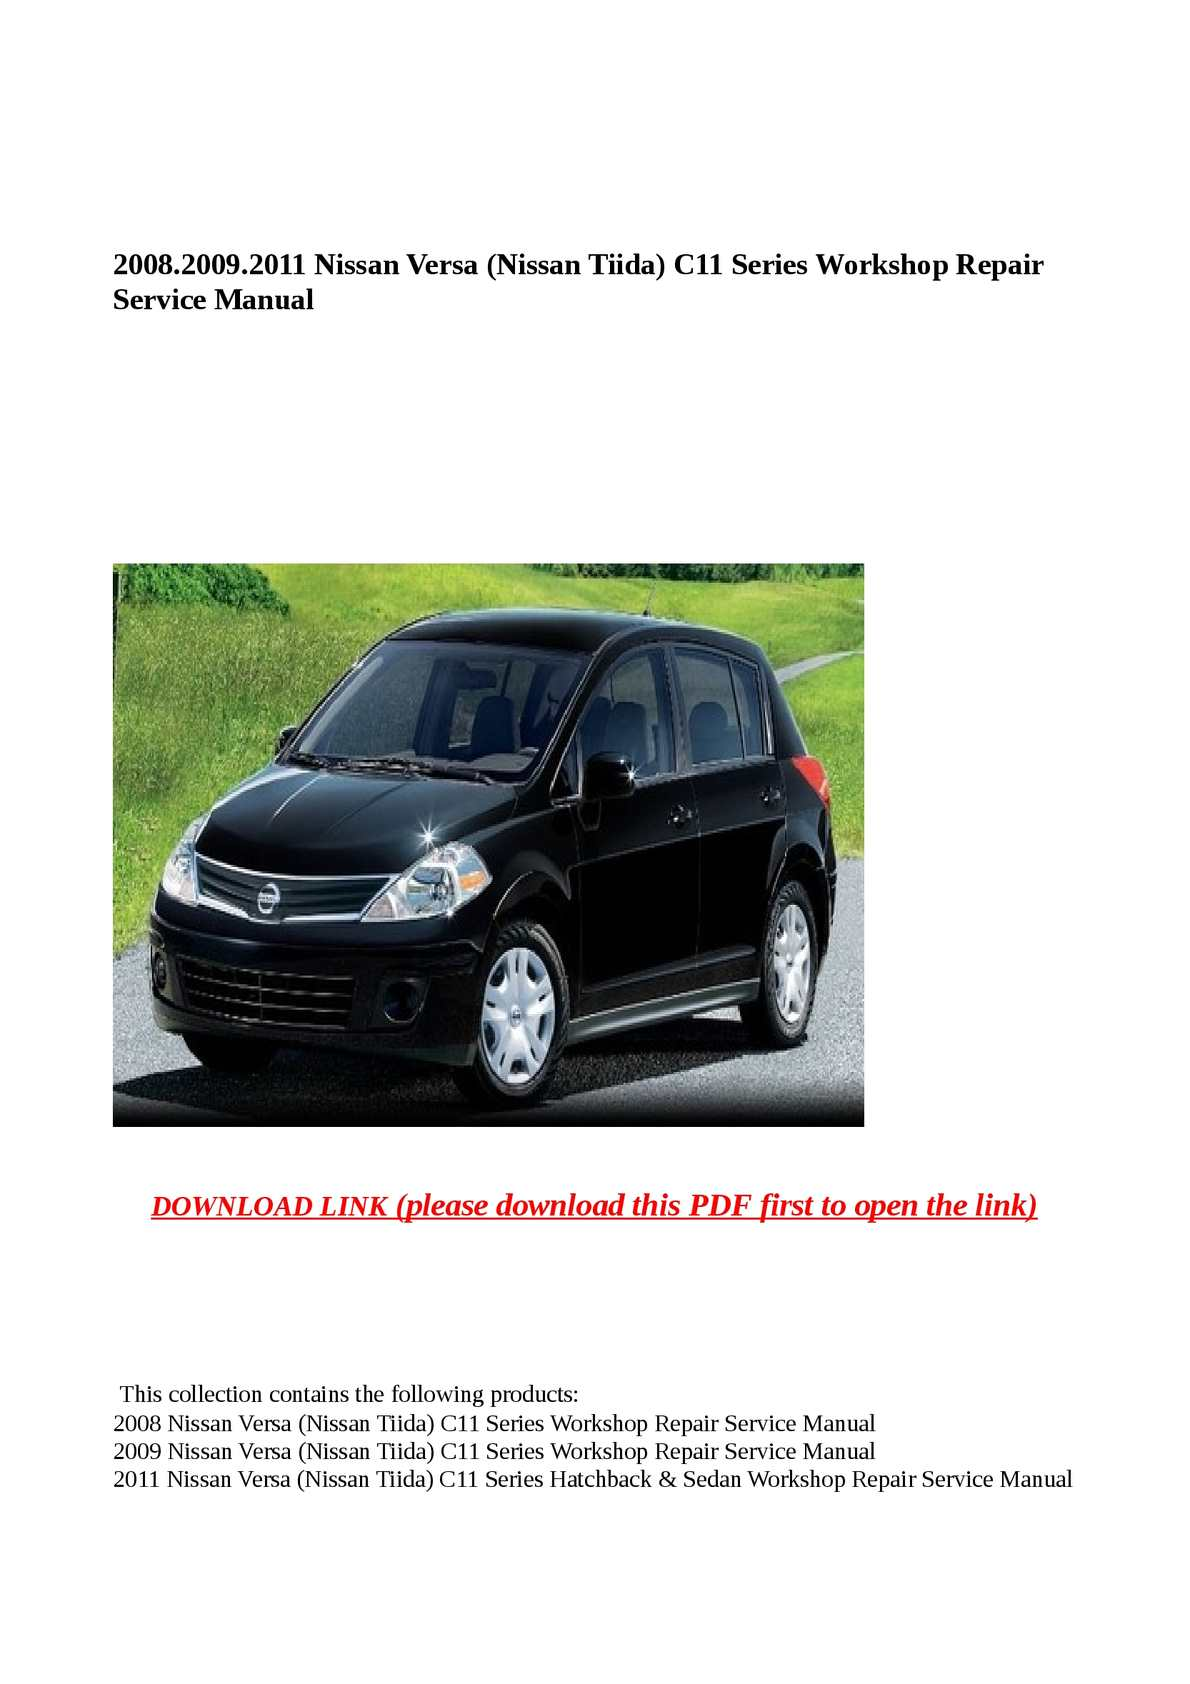 Calaméo - 2008.2009.2011 Nissan Versa (Nissan Tiida) C11 Series Workshop Repair  Service Manual